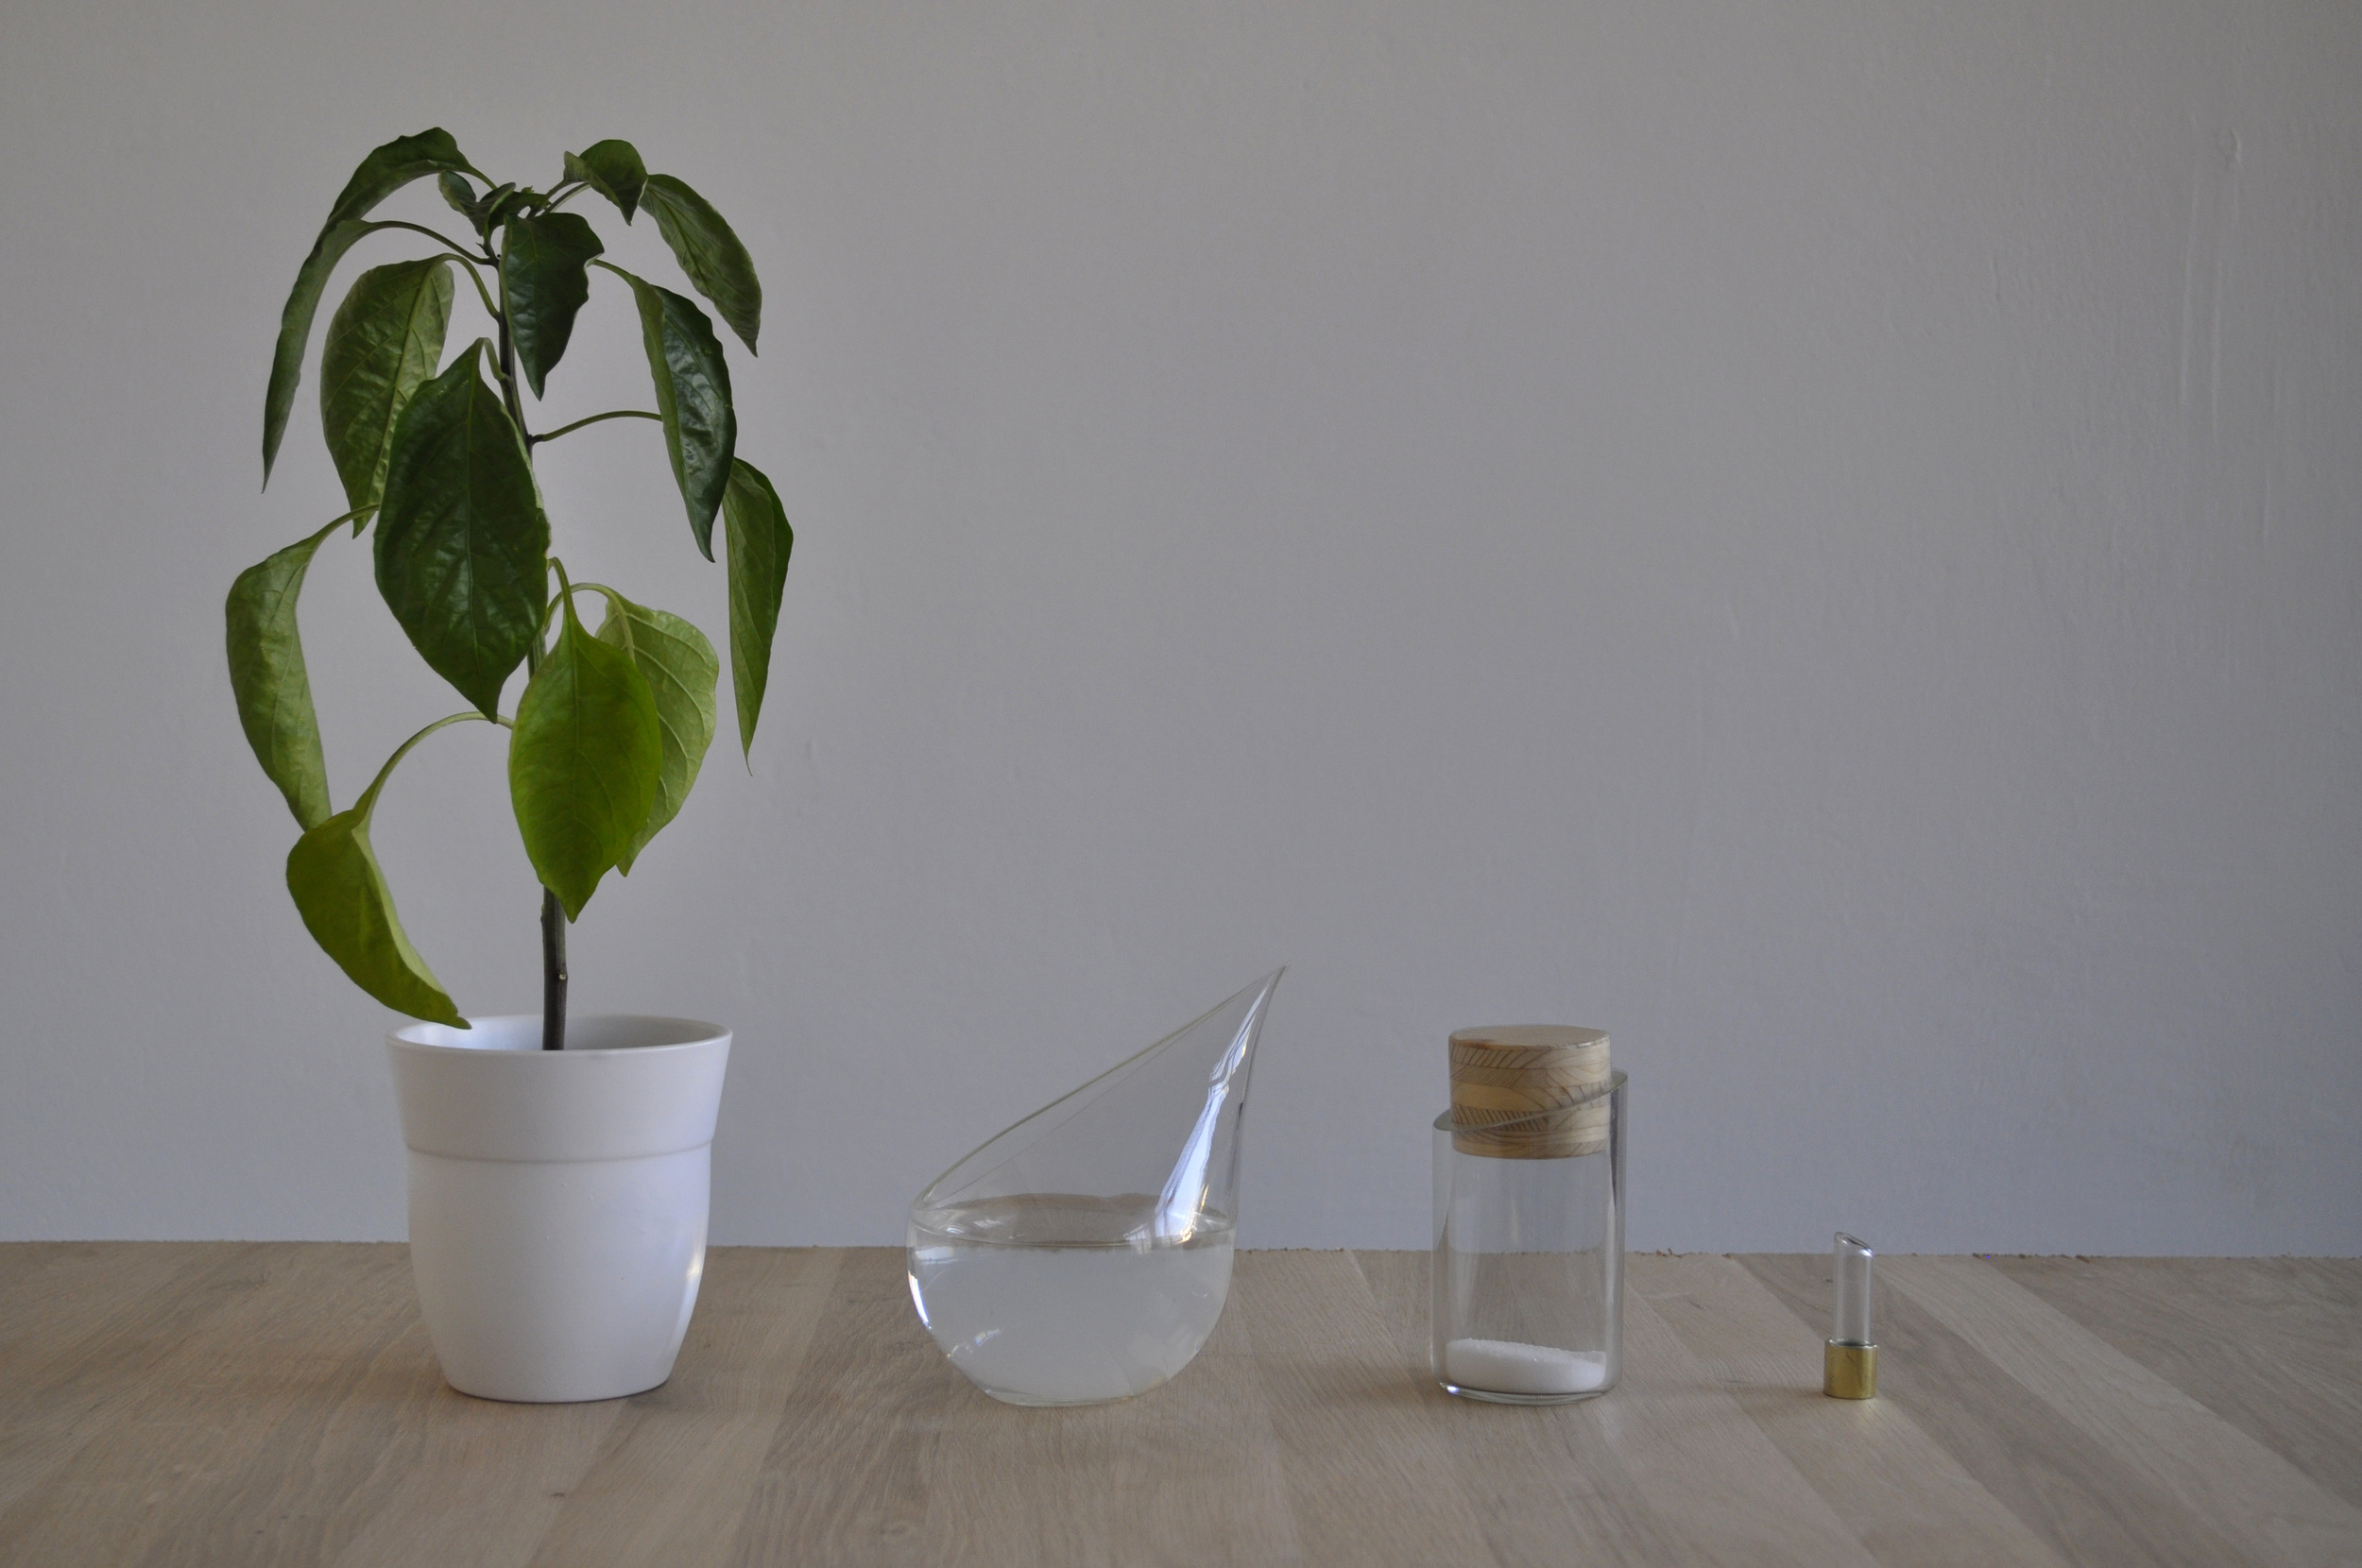 Thriving of your plants